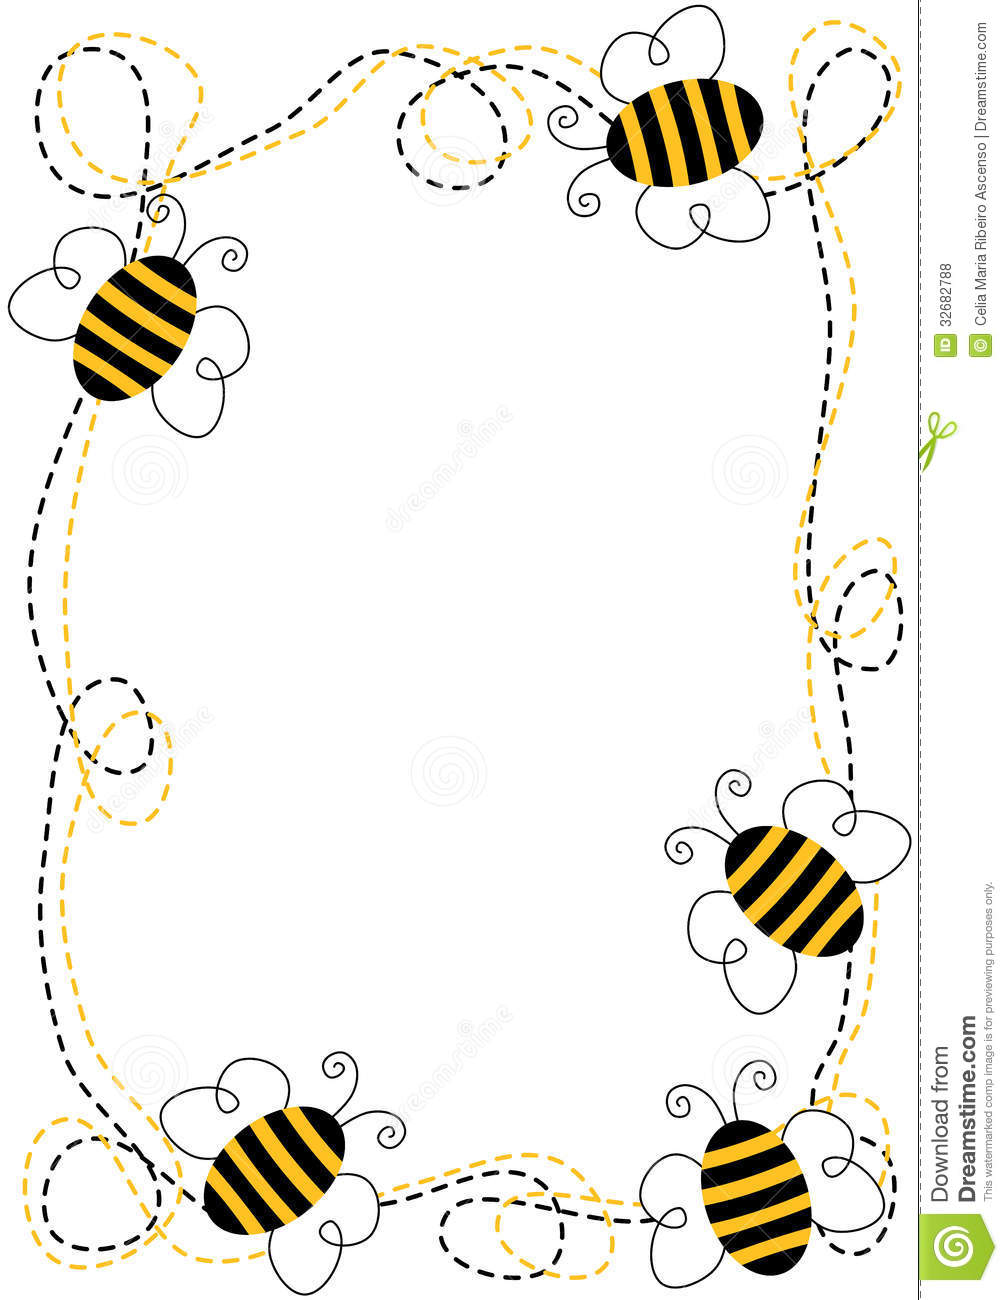 cartoon bee honey b clip art furthermore animated bee hive further bee